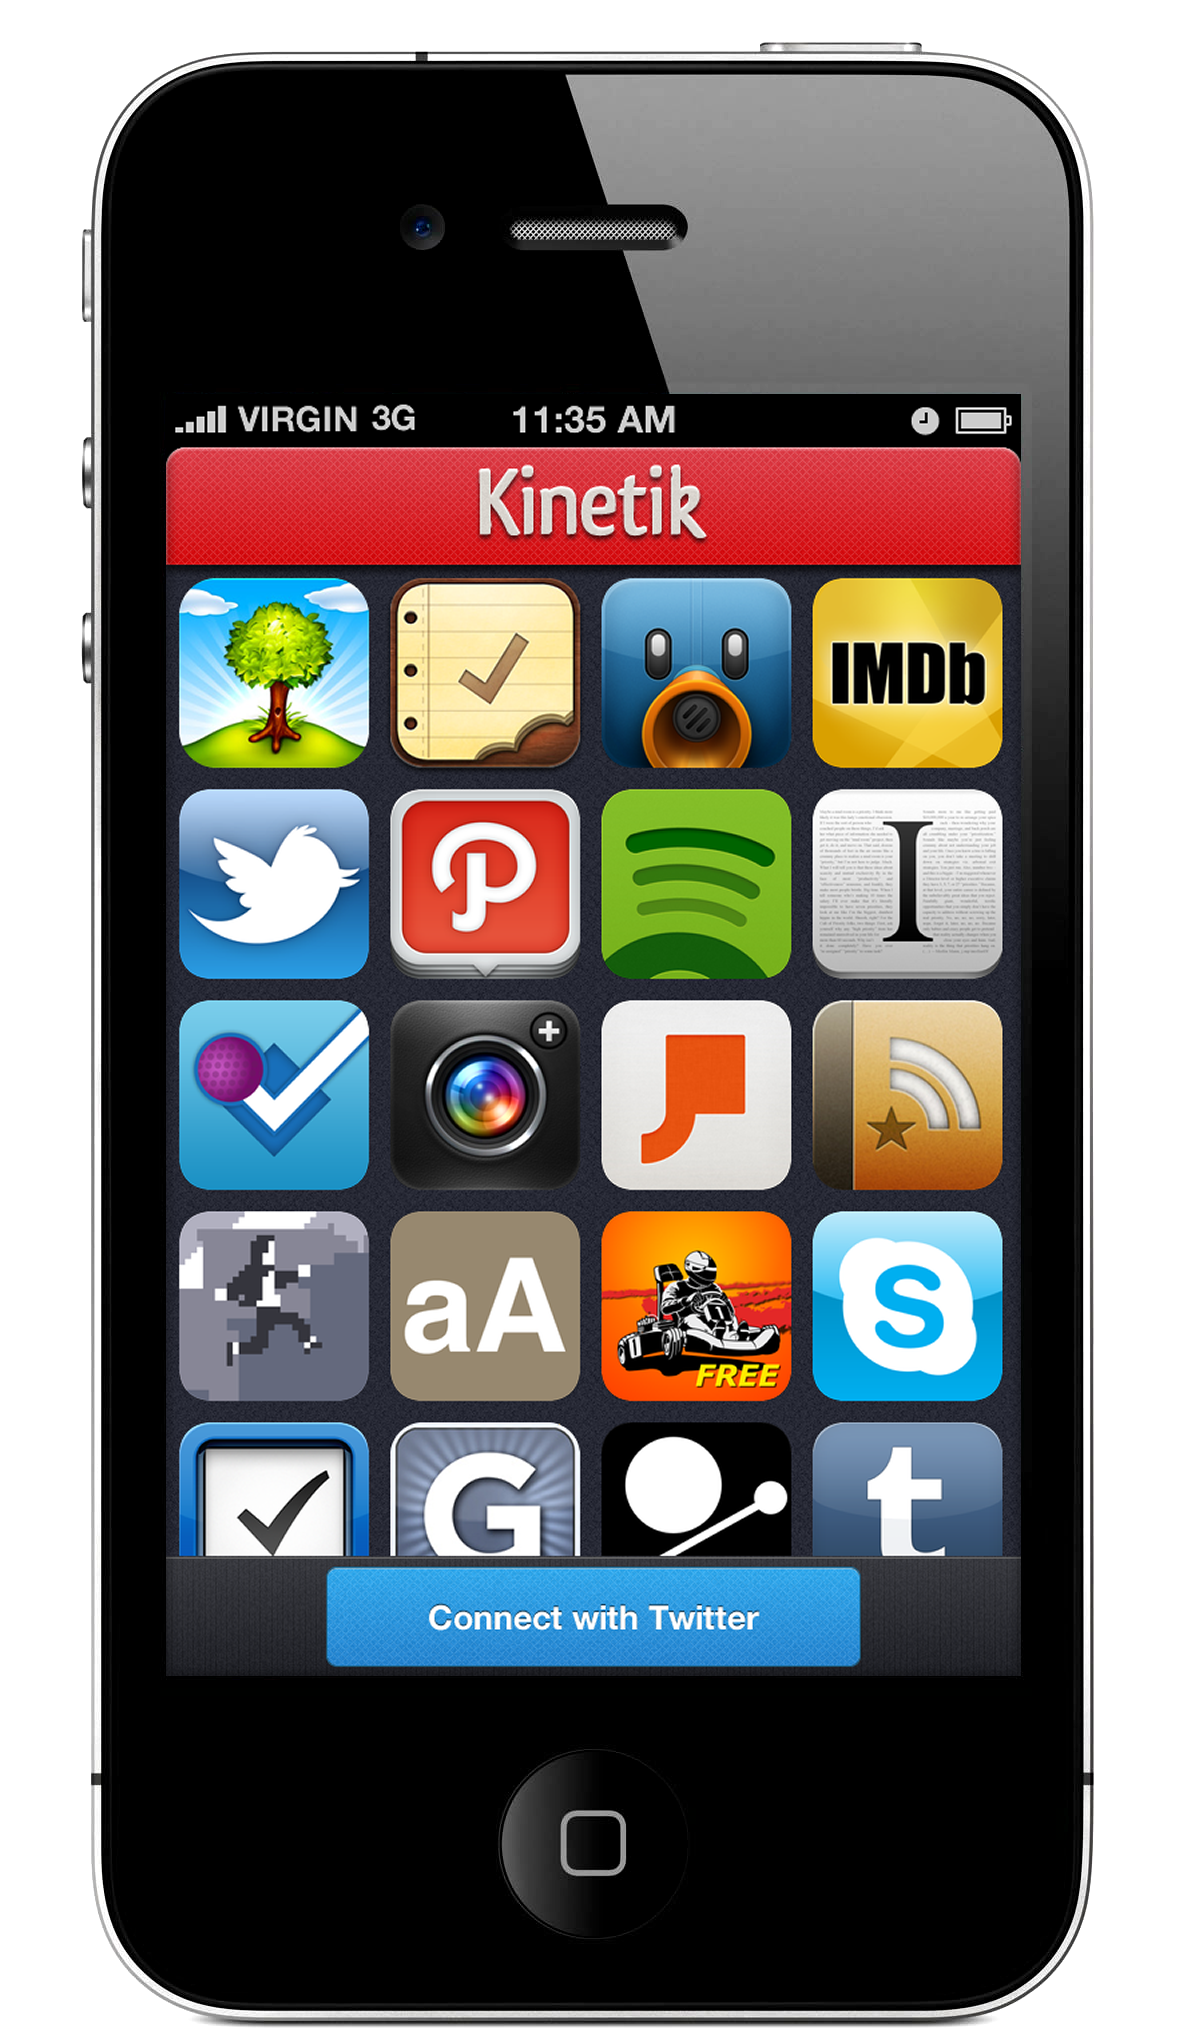 Apps: Kinetik: An IPhone App That Lets You Find And Share Great